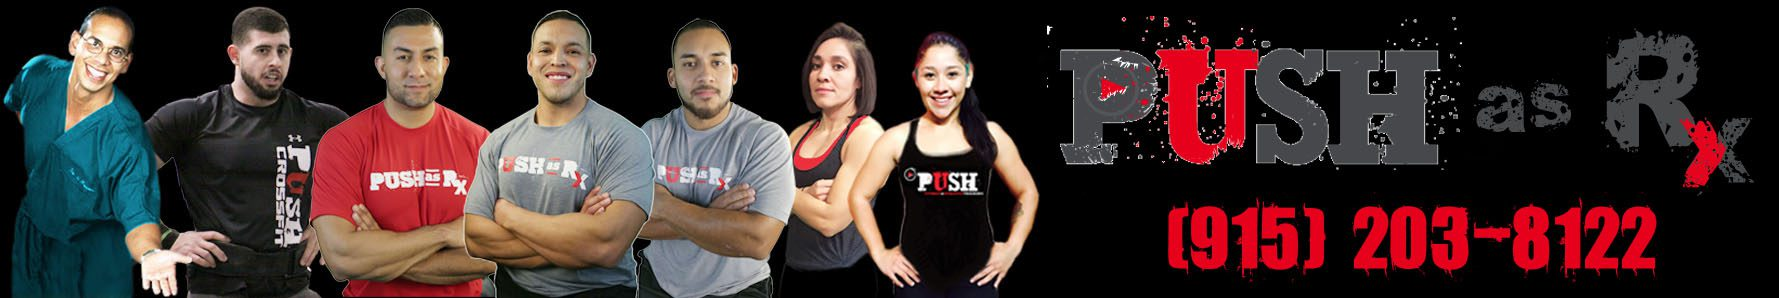 PushAsRx CrossFit Athletic Training El Paso, TX